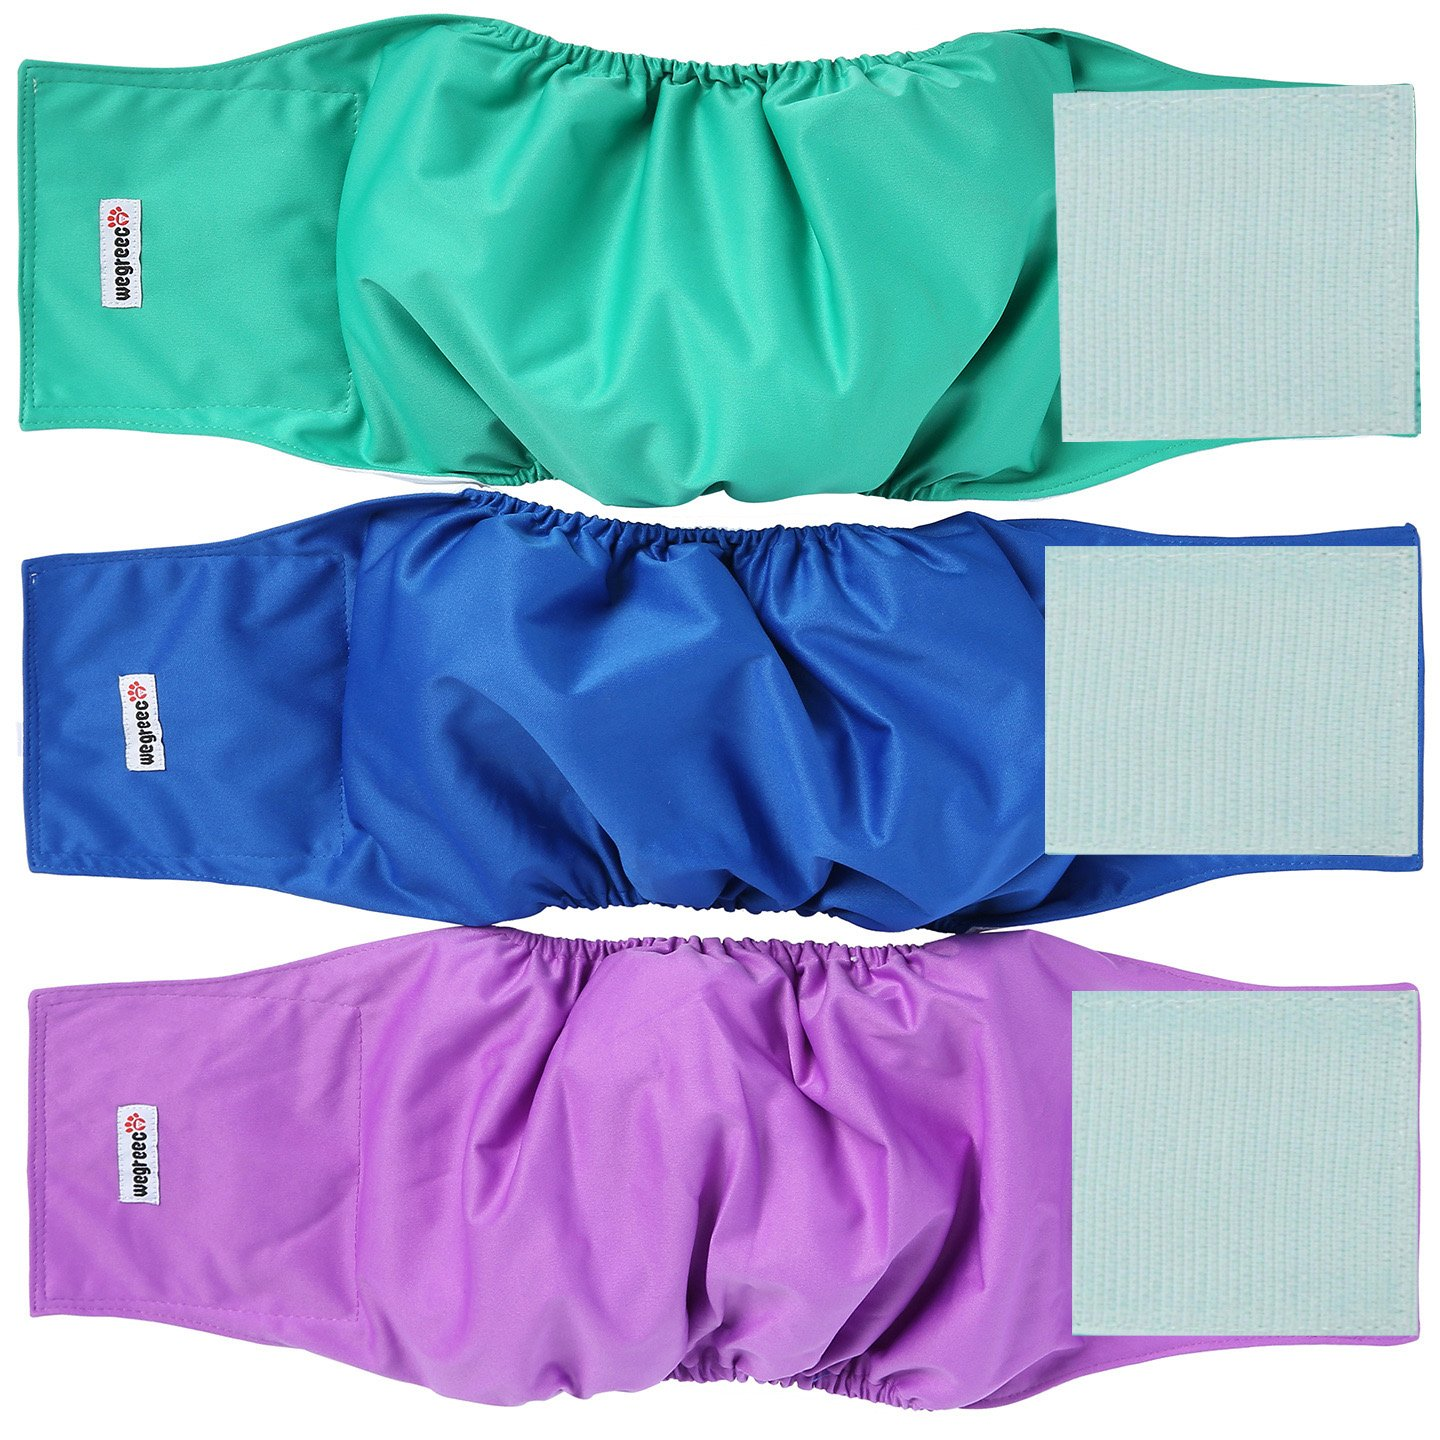 Wegreeco Washable Male Dog Belly Wrap - Pack of 3 - (Blue,Green,Purple,XX-Small)